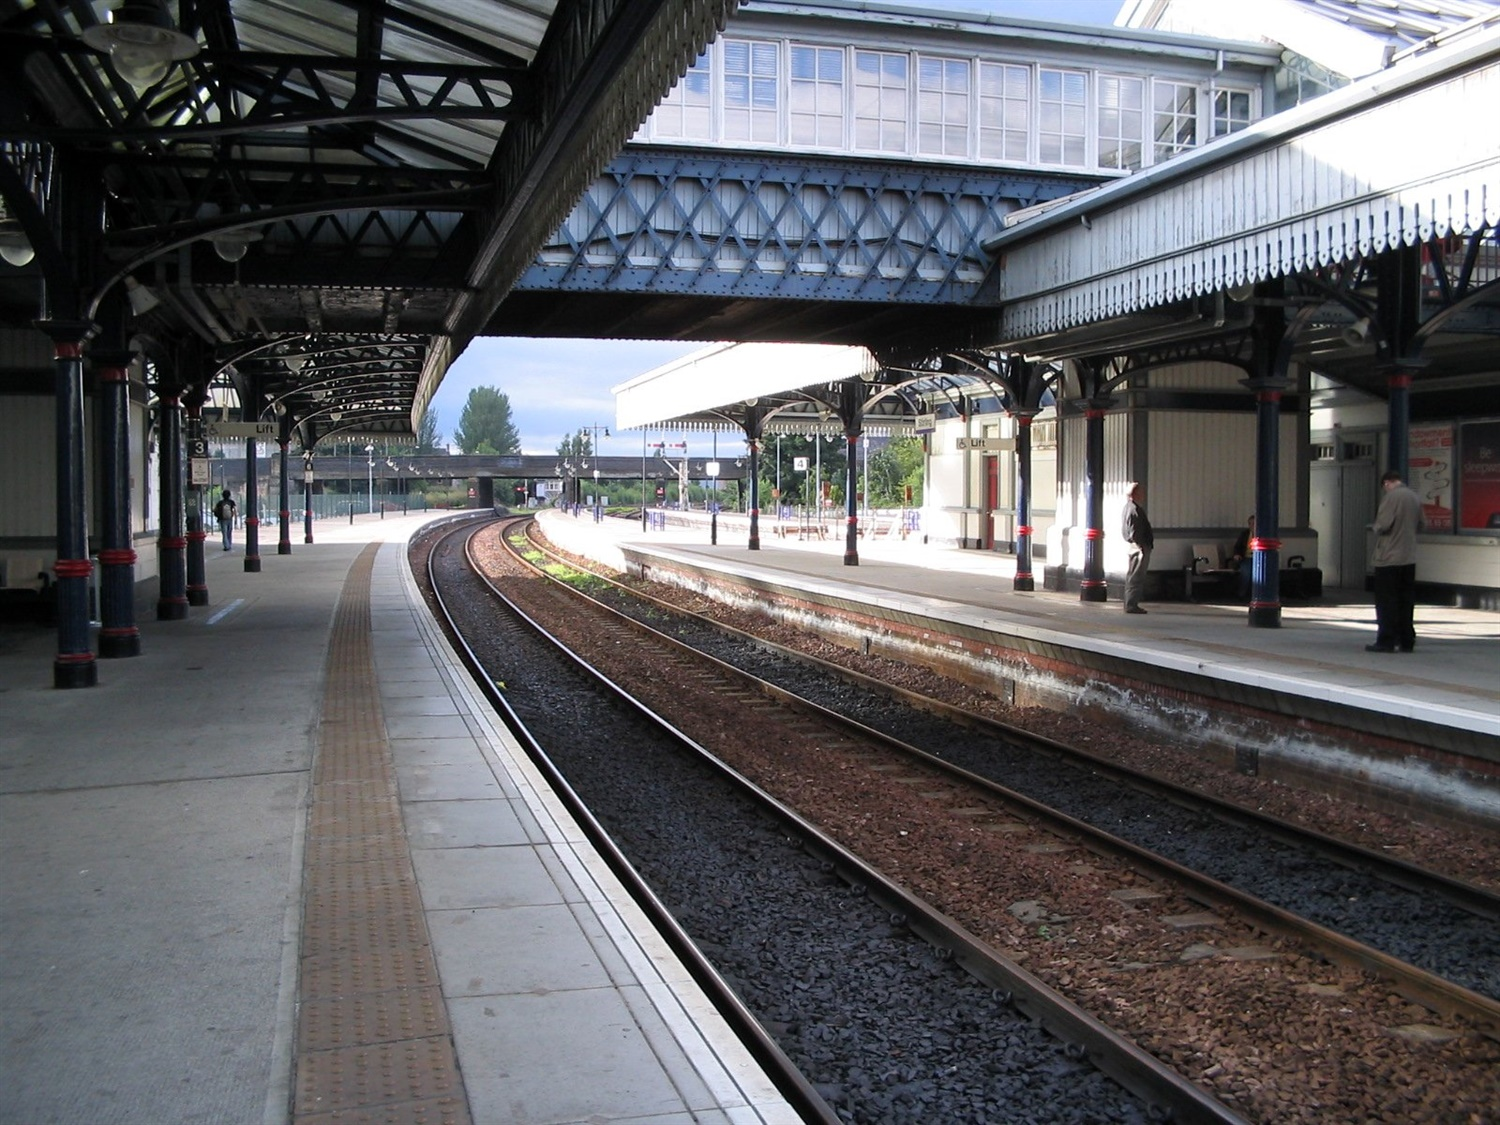 Stirling station upgrades set to start next week